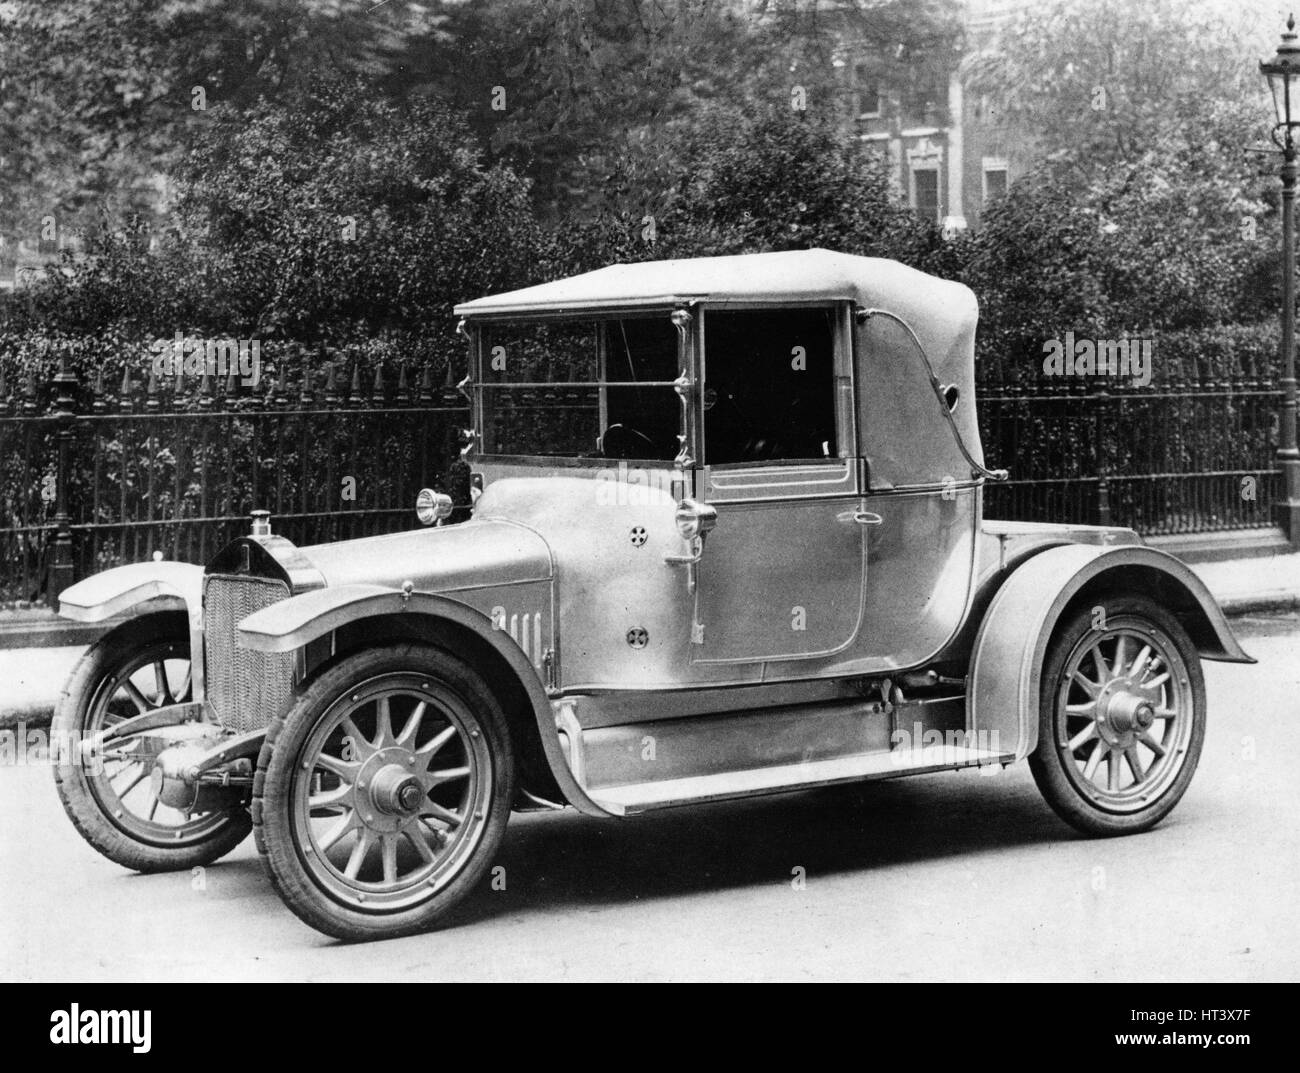 1912 Straker Squire 15hp Artist: Unknown. - Stock Image